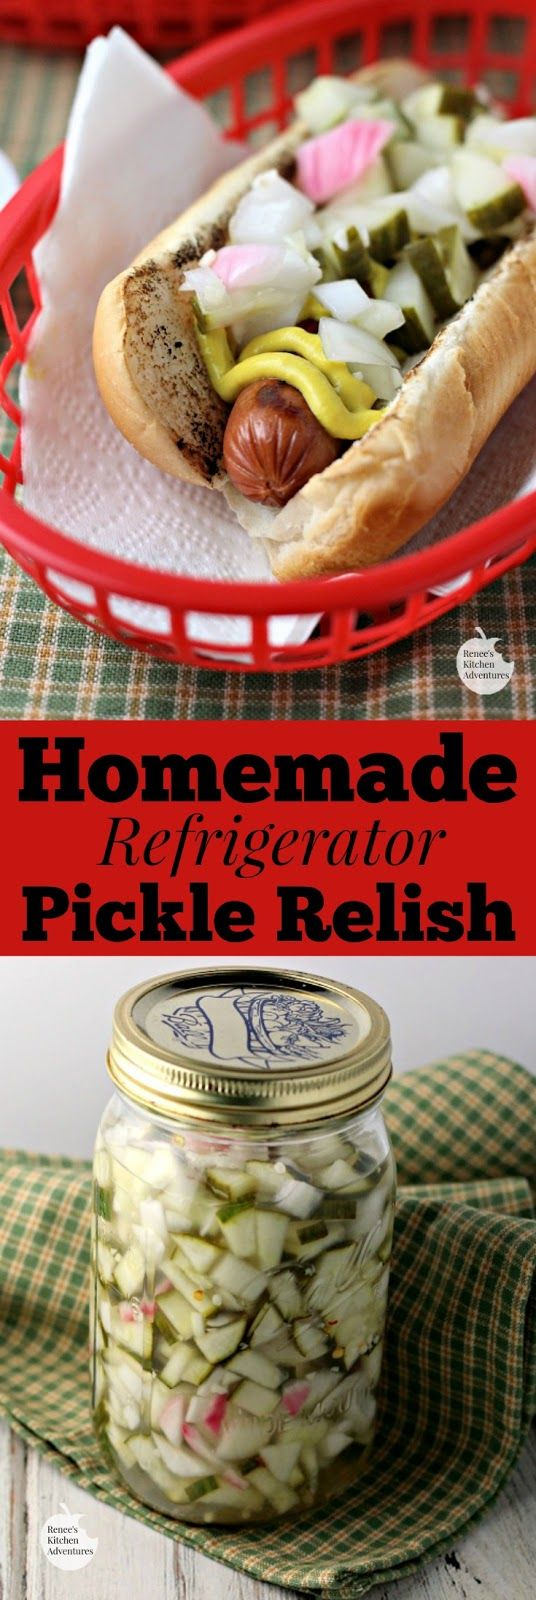 Homemade Refrigerator Pickle Relish | by Renee's Kitchen Adventures - quick and easy recipe for refrigerator pickle relish that makes a great topping for hot dogs, burgers and more!  Great homemade relish for your summer BBQ!  #SundaySupper  #RKArecipes